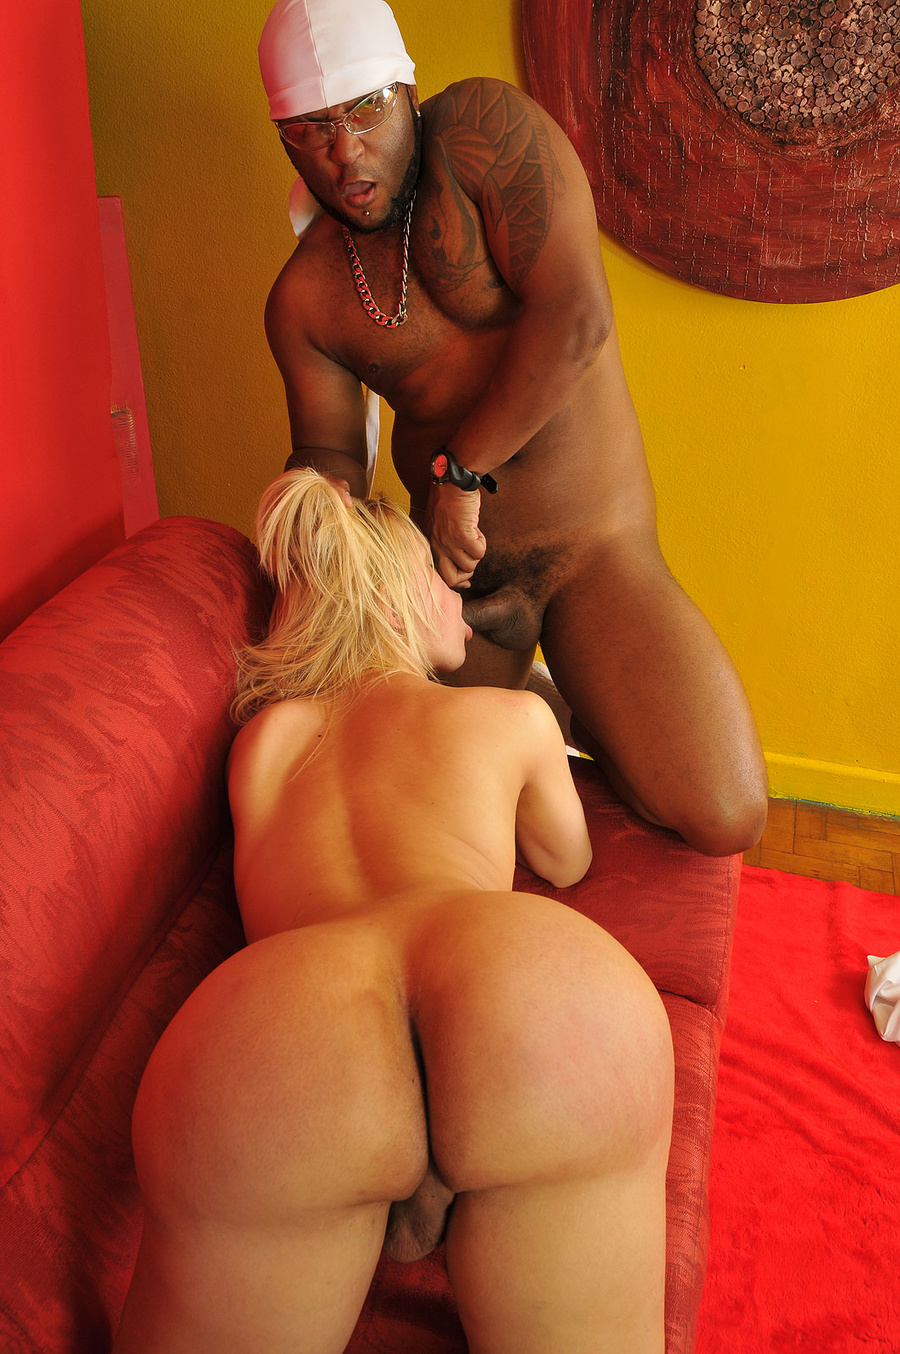 Big ass shemale porn